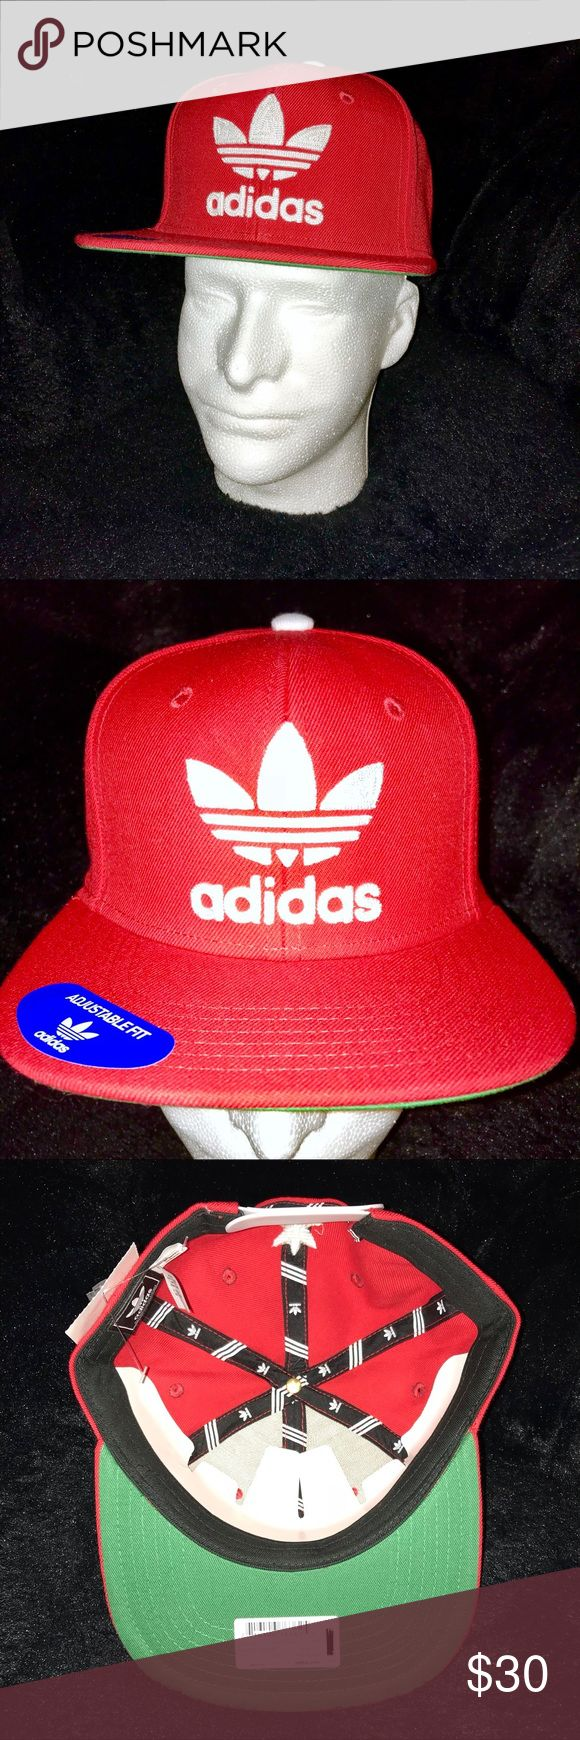 NWT! Adidas Originals Trefoil Chain Snapback Hat Brand New With Tags, Stickers, And Cardboard Insert!  Size: One Size Fits Most Color: Scarlet/White Brand: Adidas originals Trefoil Chain Logo Snapback Hat 68% Acrylic, 20% Cotton, 12% Wool Made in China  Hat comes from a smoke and pet free home  Thanks for looking! adidas Accessories Hats